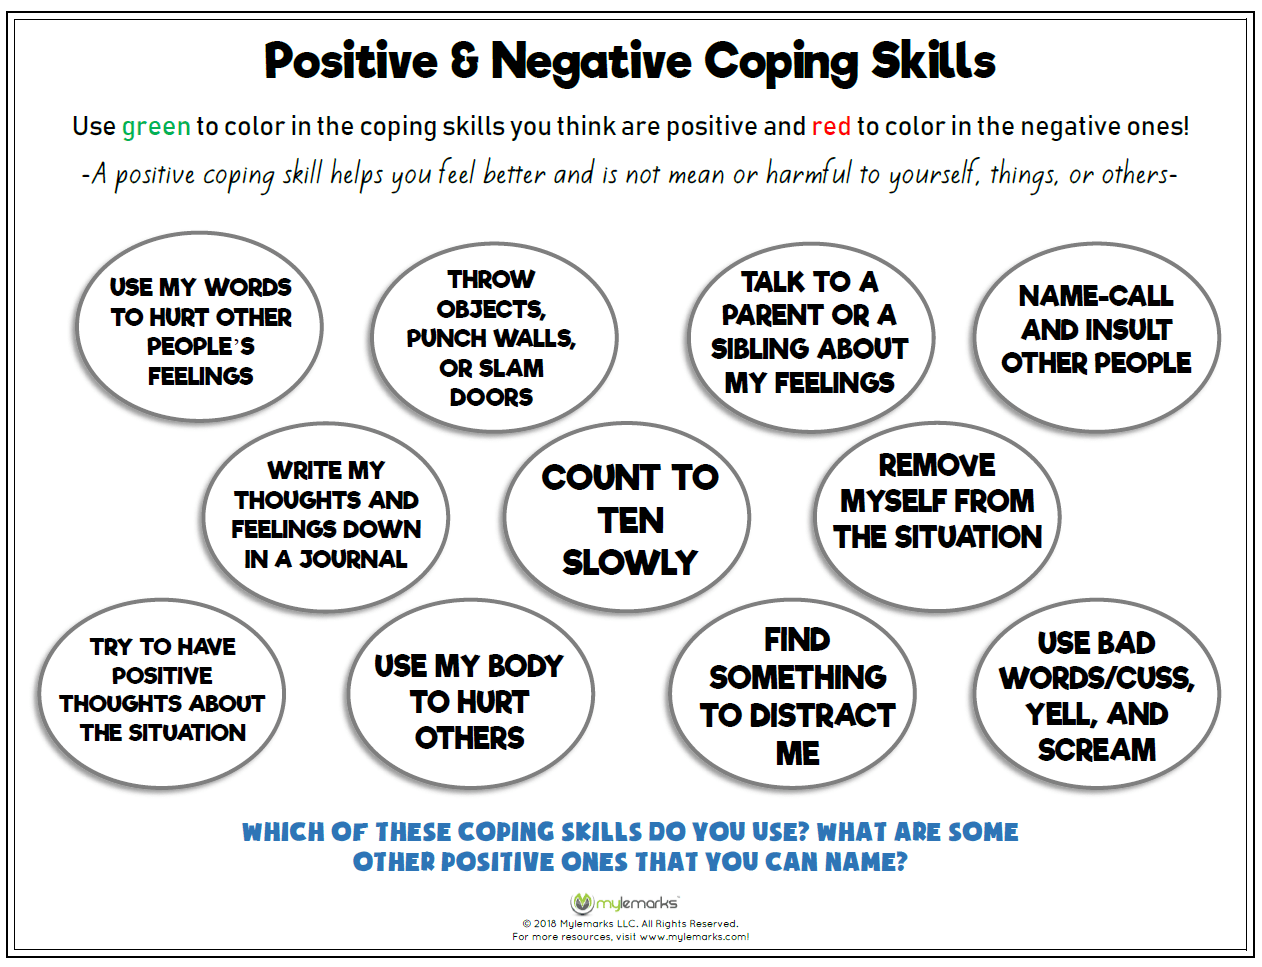 Positive Amp Negative Coping Skills